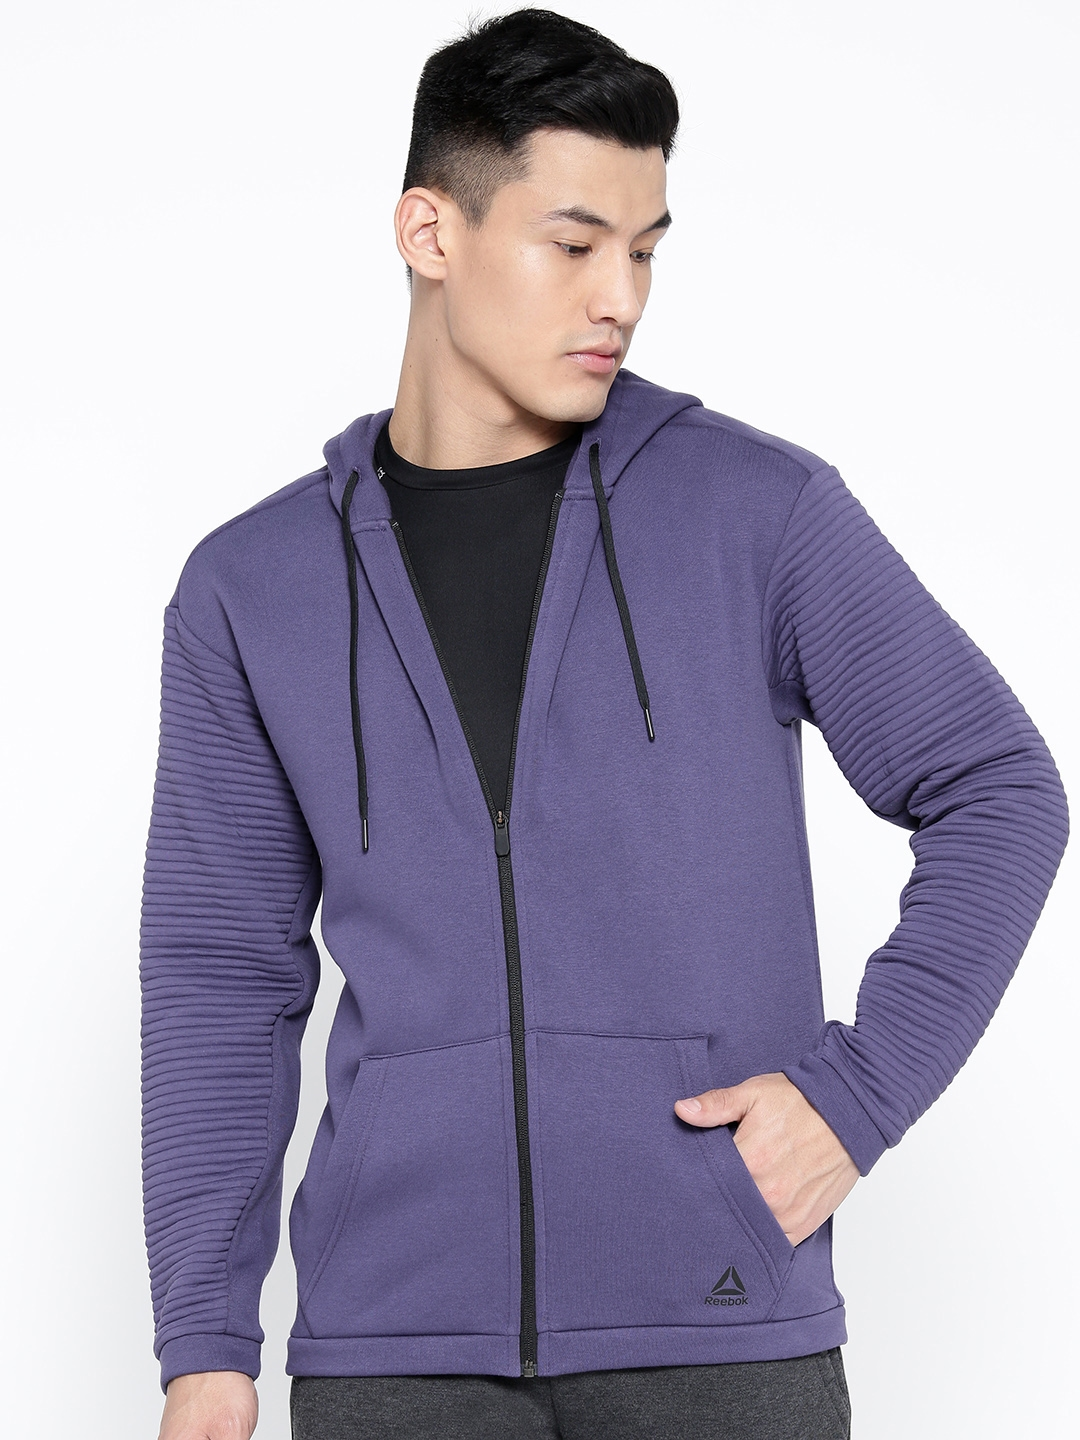 Reebok Men Purple Workout Full Zip Fleece Solid Hooded Training Sweatshirt